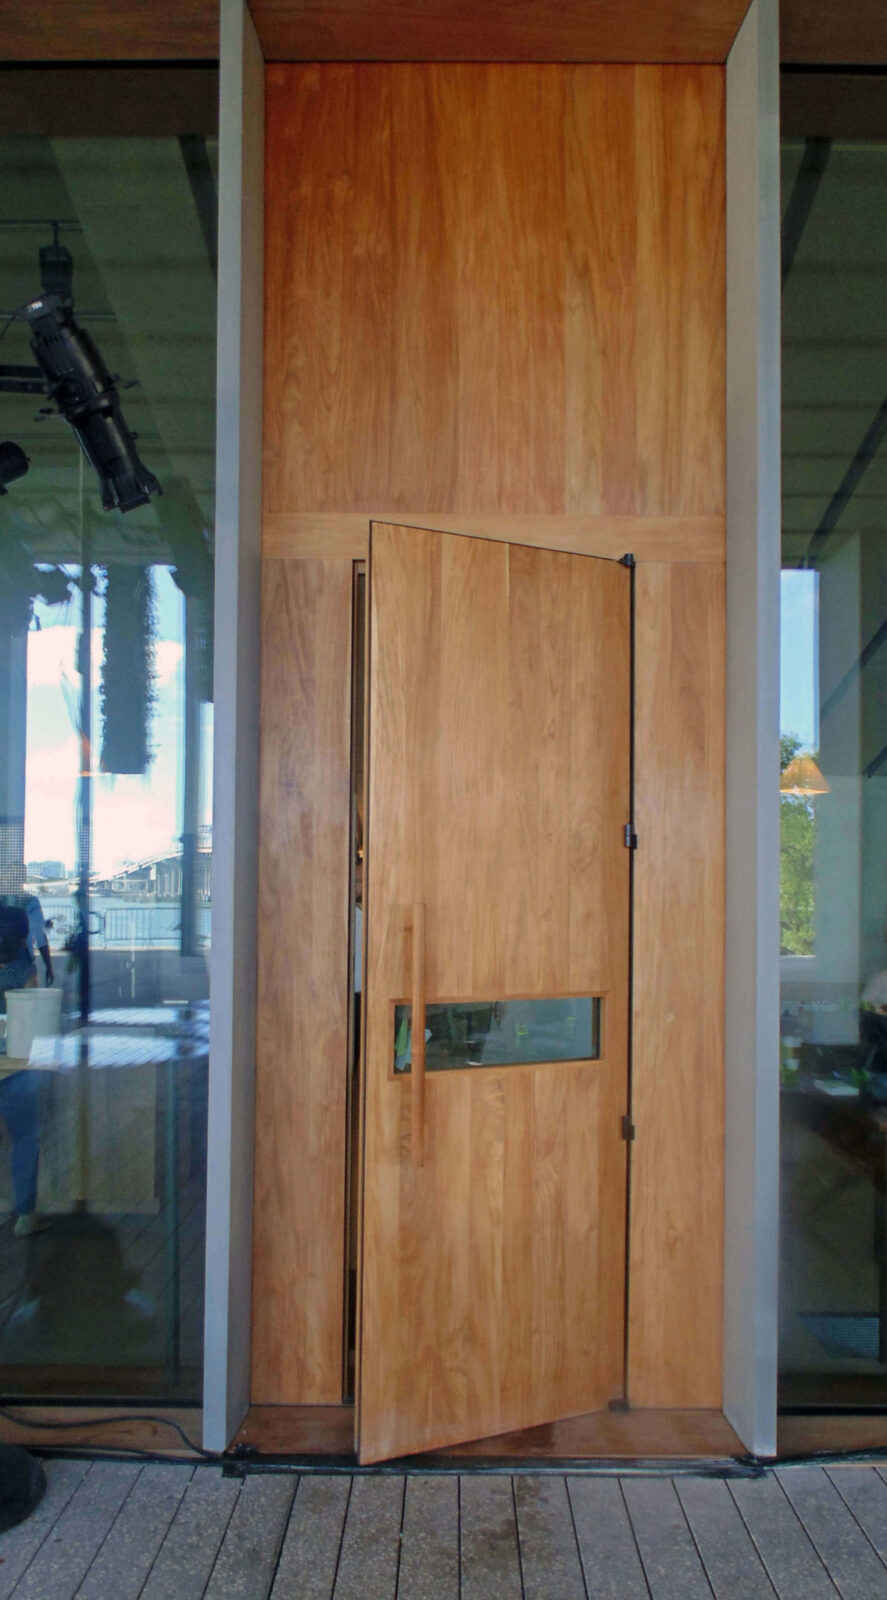 TEAK EXTERIOR DOOR FOR THE PEREZ MUSEUM OF ART.